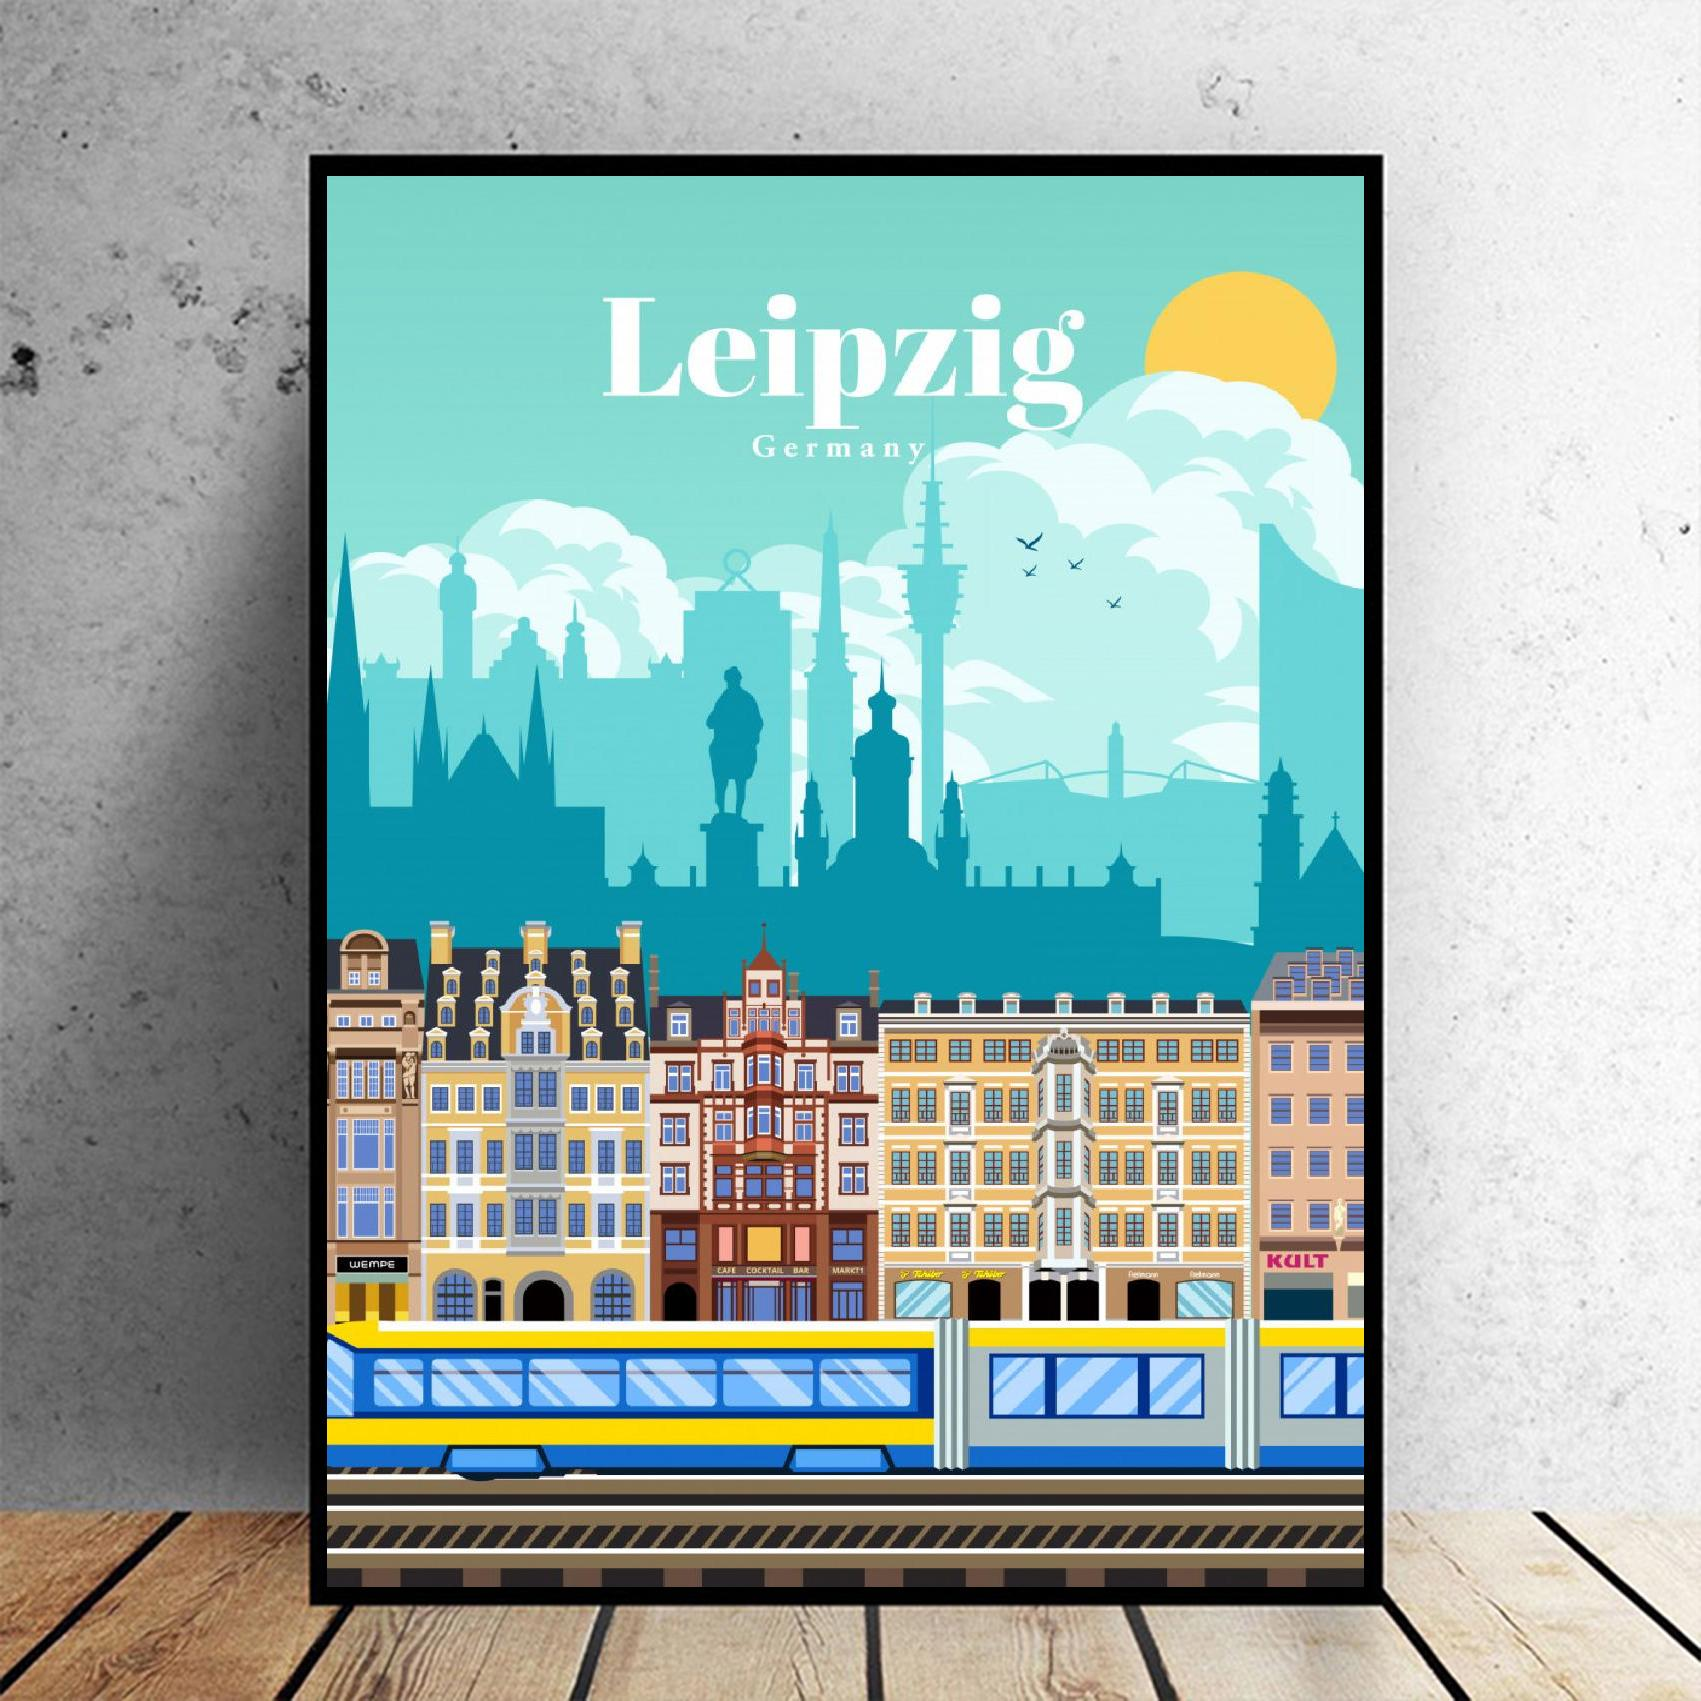 Travel To Leipzig Canvas Travel Poster Wall Art Pictures For Living Room Home Decor No Frame Painting Calligraphy Aliexpress